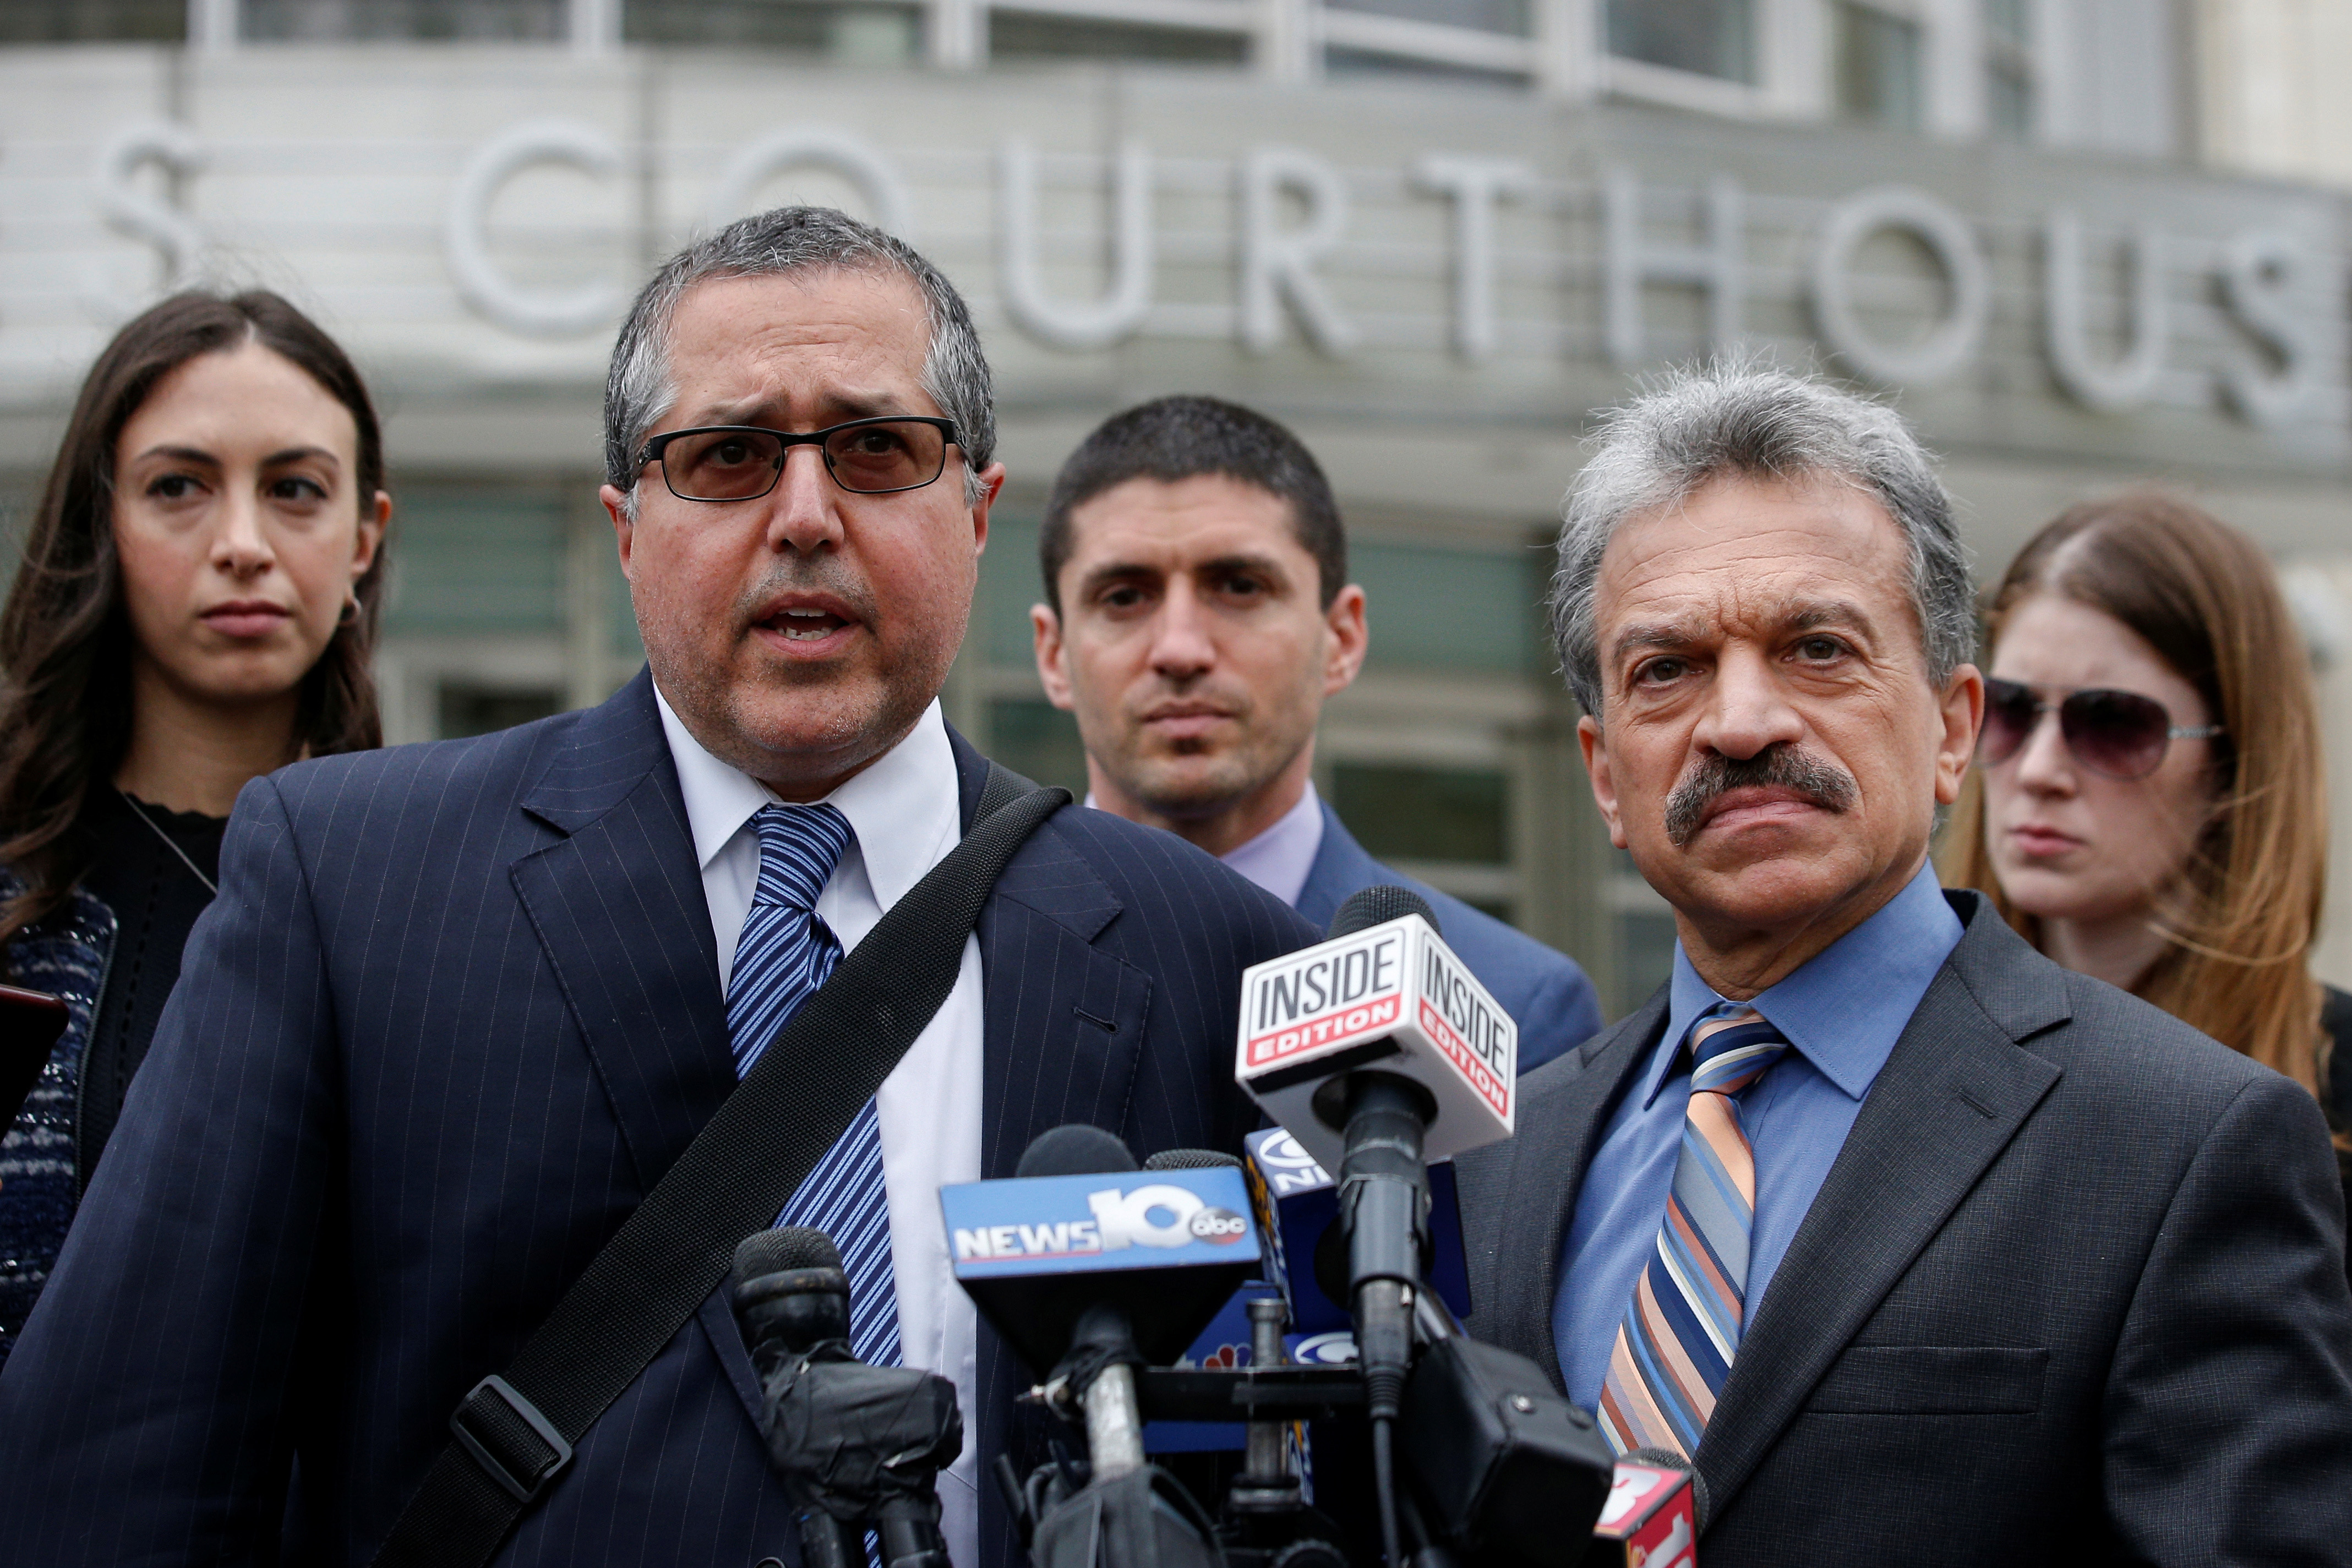 Raniere's lawyers, Marc Agnifilo, left, and Paul DerOhannesian, speak to reporters following a court hearing in New York City on May 4, 2018. (Brendan McDermid/Reuters)